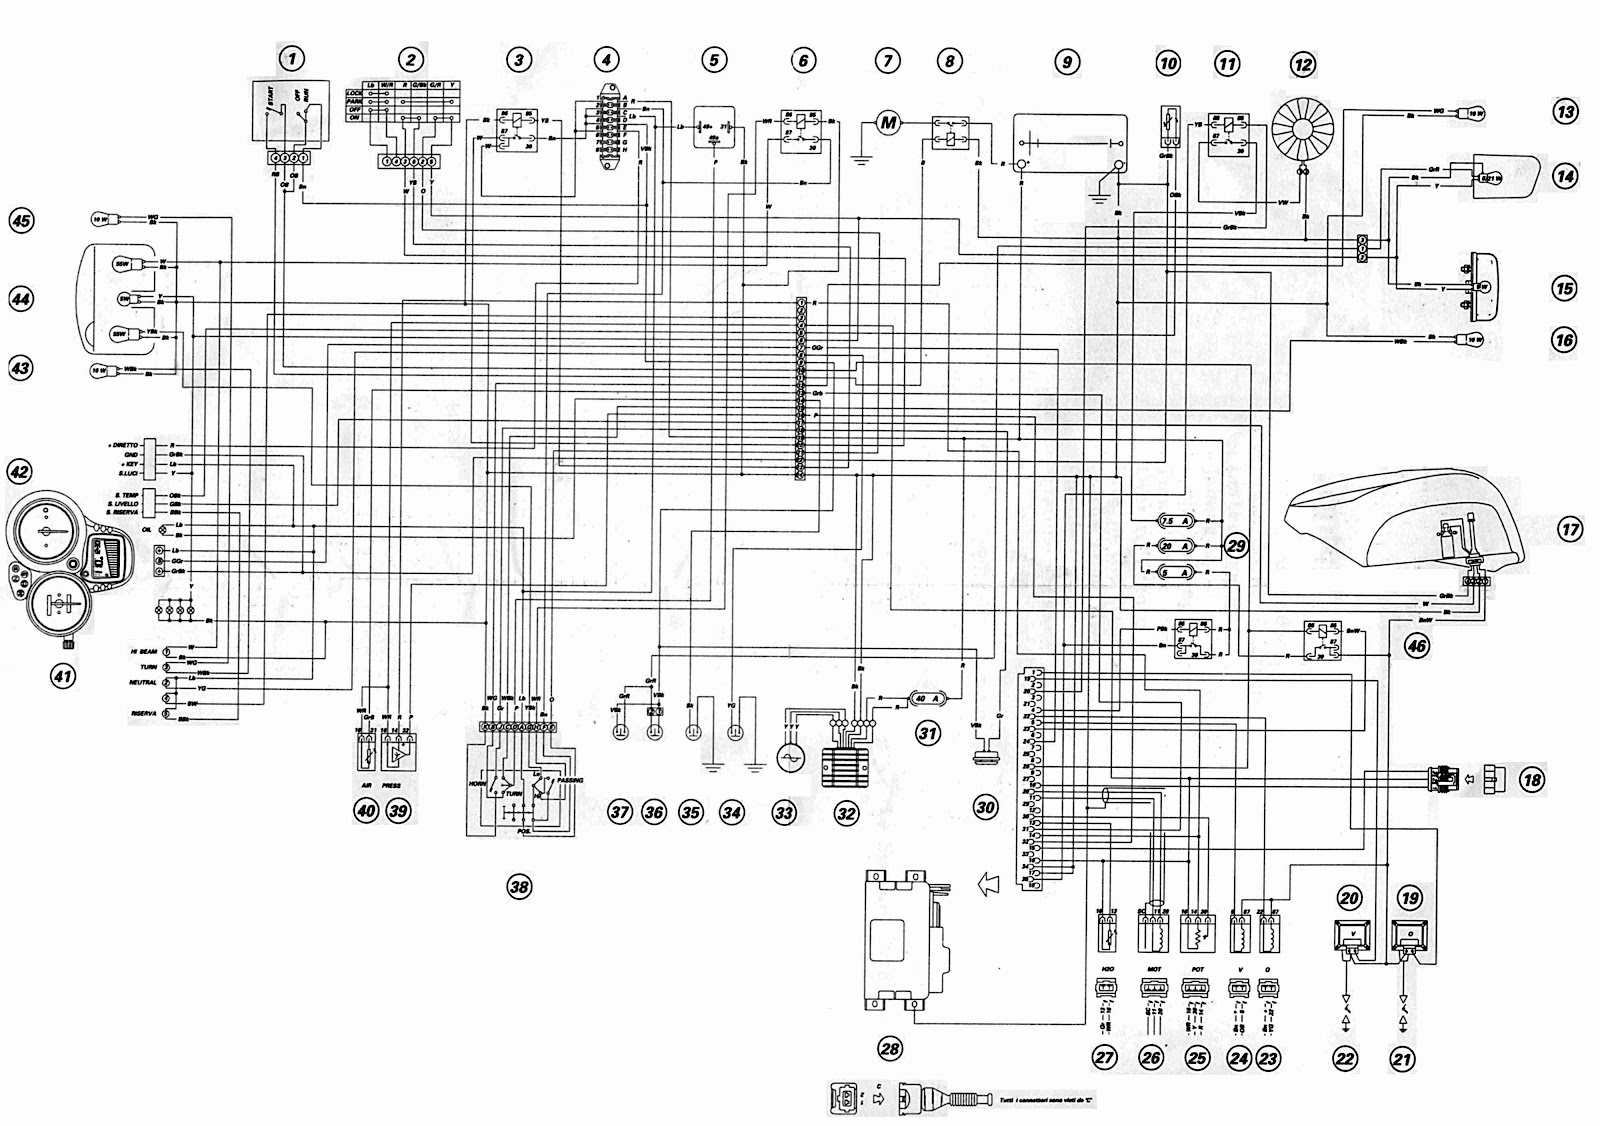 2002 ford explorer fuel pump wiring diagram